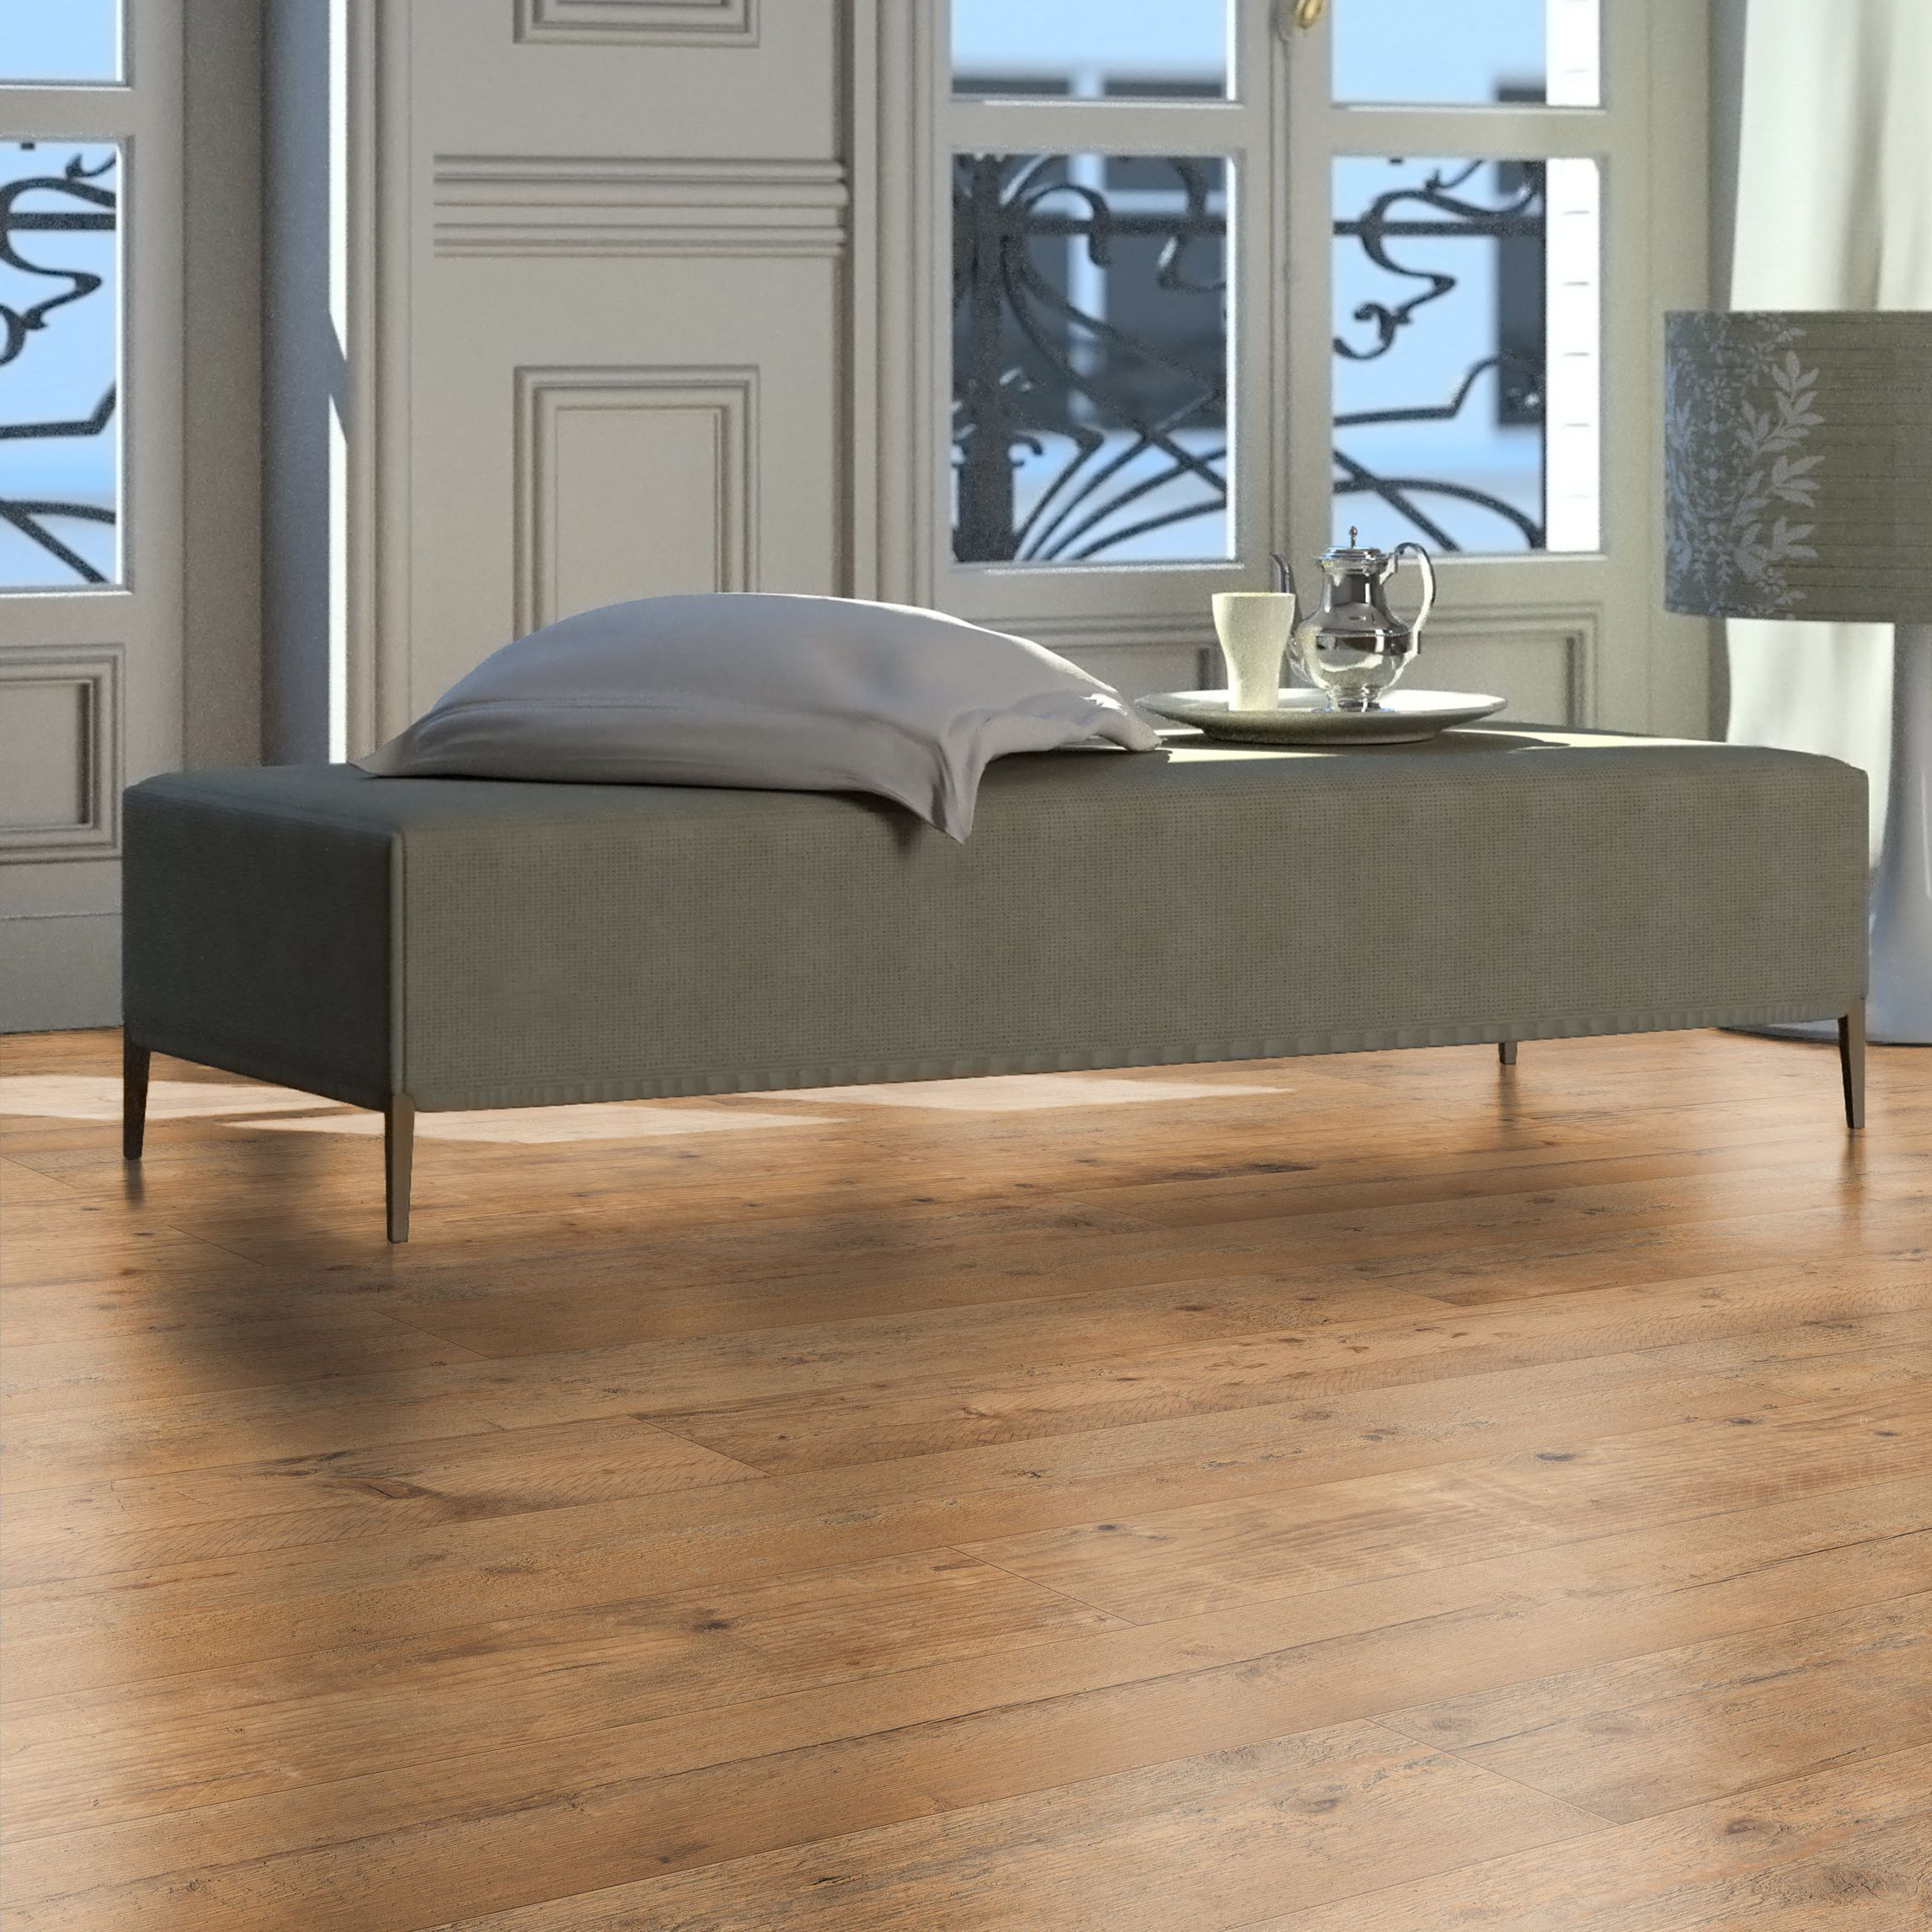 Sicily Oak Effect Laminate Flooring 1.99 m² Pack